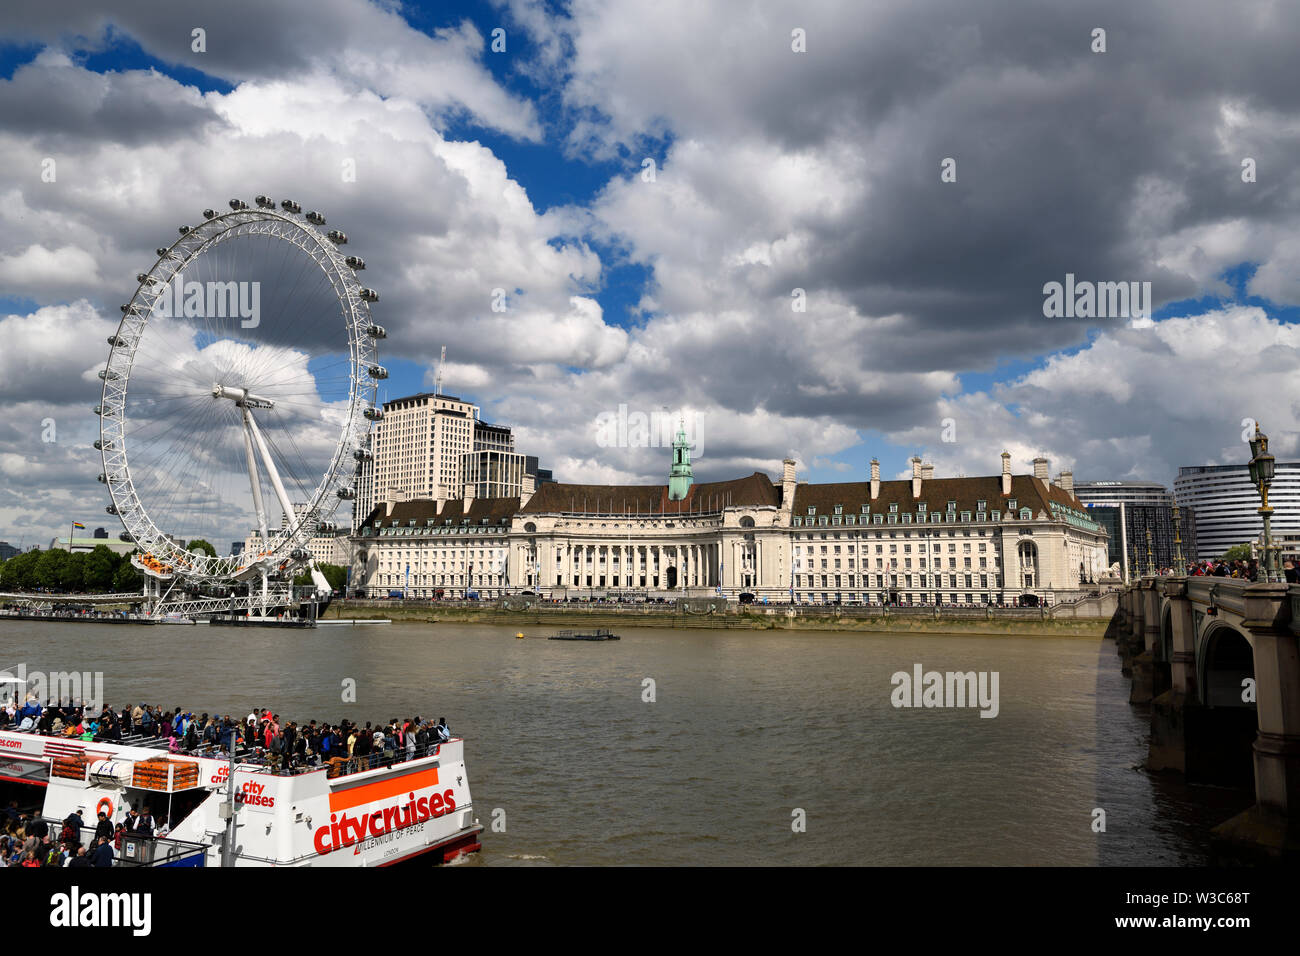 London Eye on the River Thames with tourists on tour boats and Shrek's adventure and Sea Life Centre Aquarium from Westminster Bridge London England - Stock Image